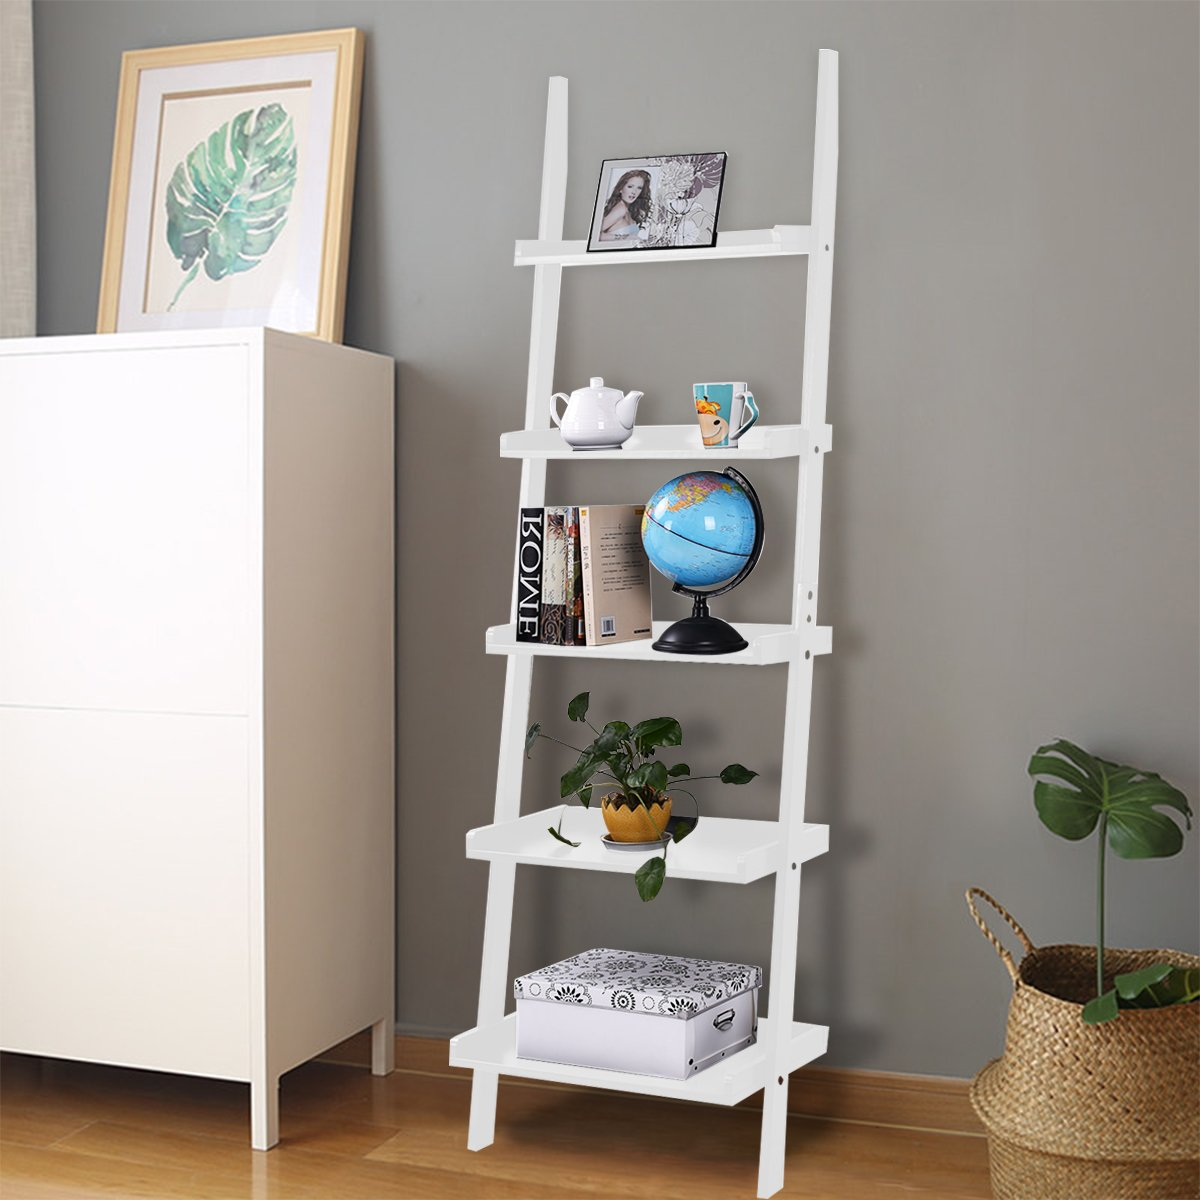 Costwaty 5 Tier Wooden Wall Rack Leaning Ladder Shelf Unit Bookcase Display Stock Black/White (5 Tiers, White) Costway